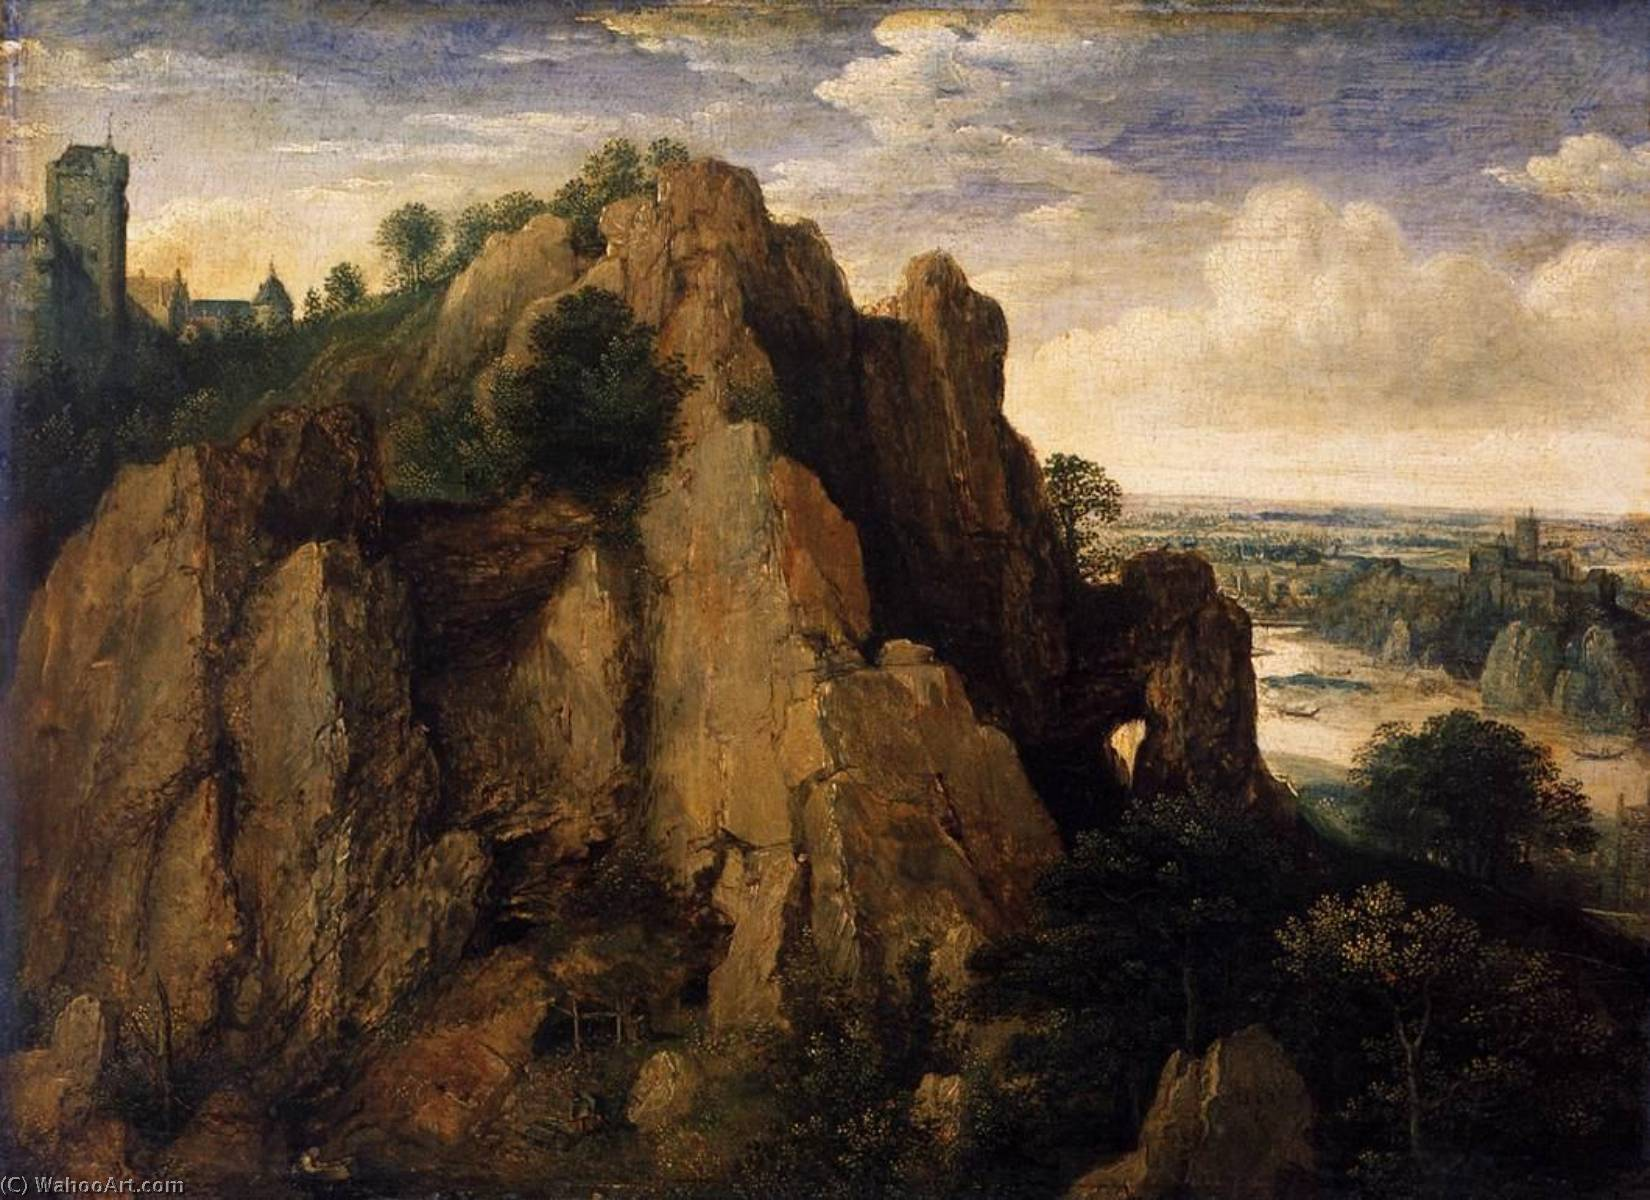 Mountainous Landscape, 1582 by Lucas Van Valckenborch I (1535-1597) | Museum Quality Copies Lucas Van Valckenborch I | ArtsDot.com